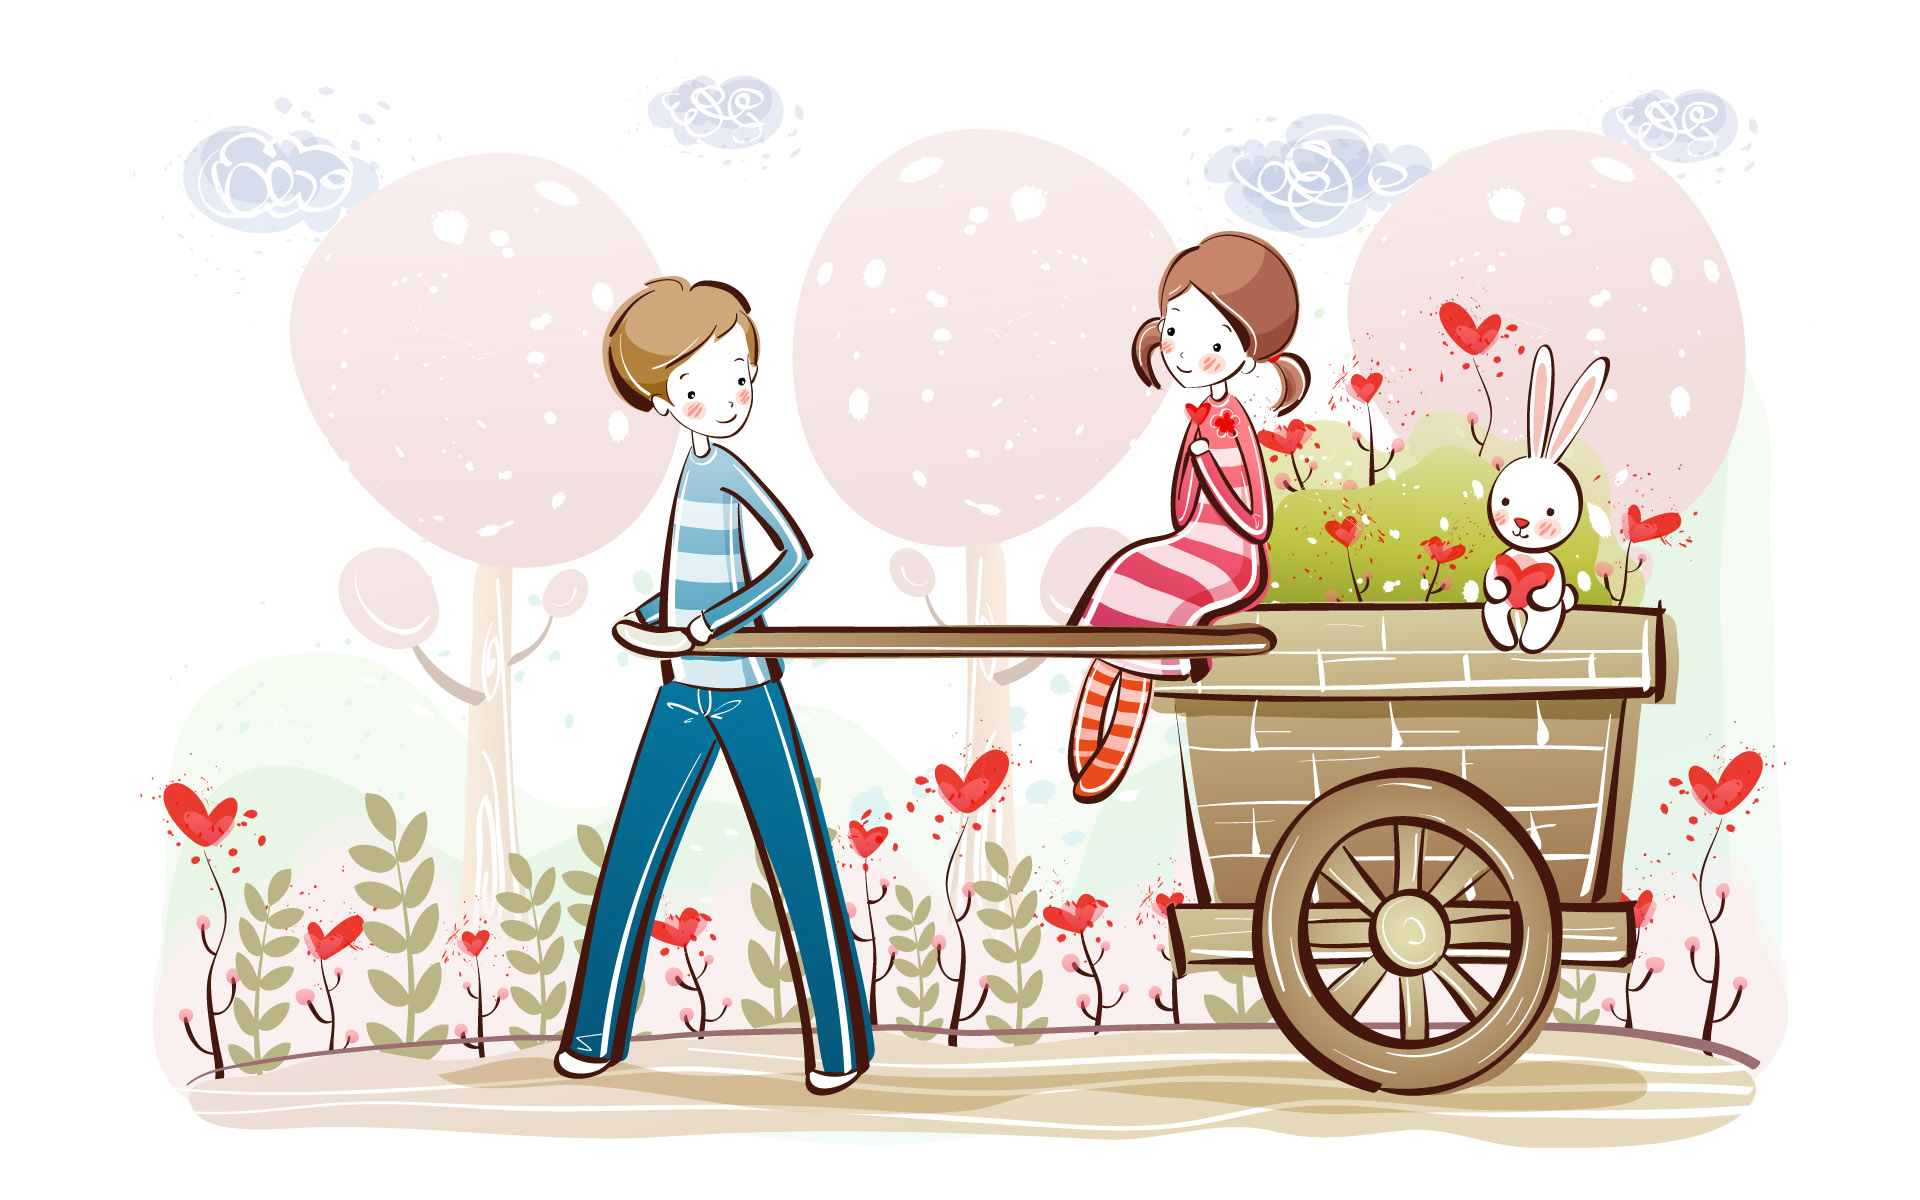 Romantic Valentine's Day illustration class 8946